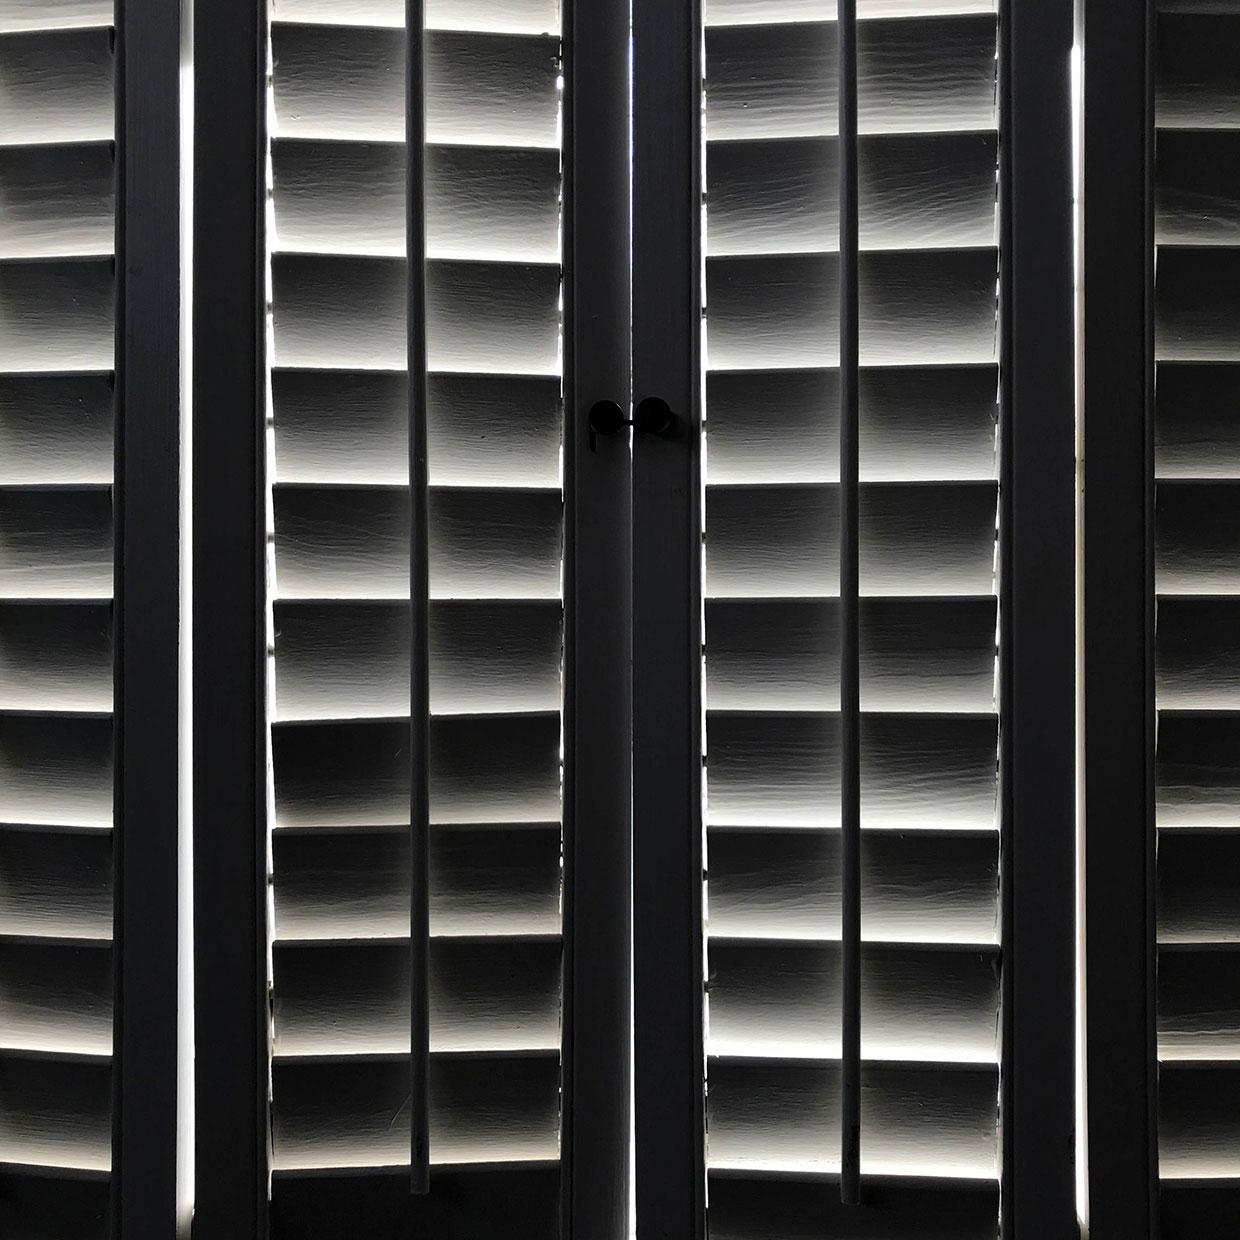 Wooden shutters with glowing light